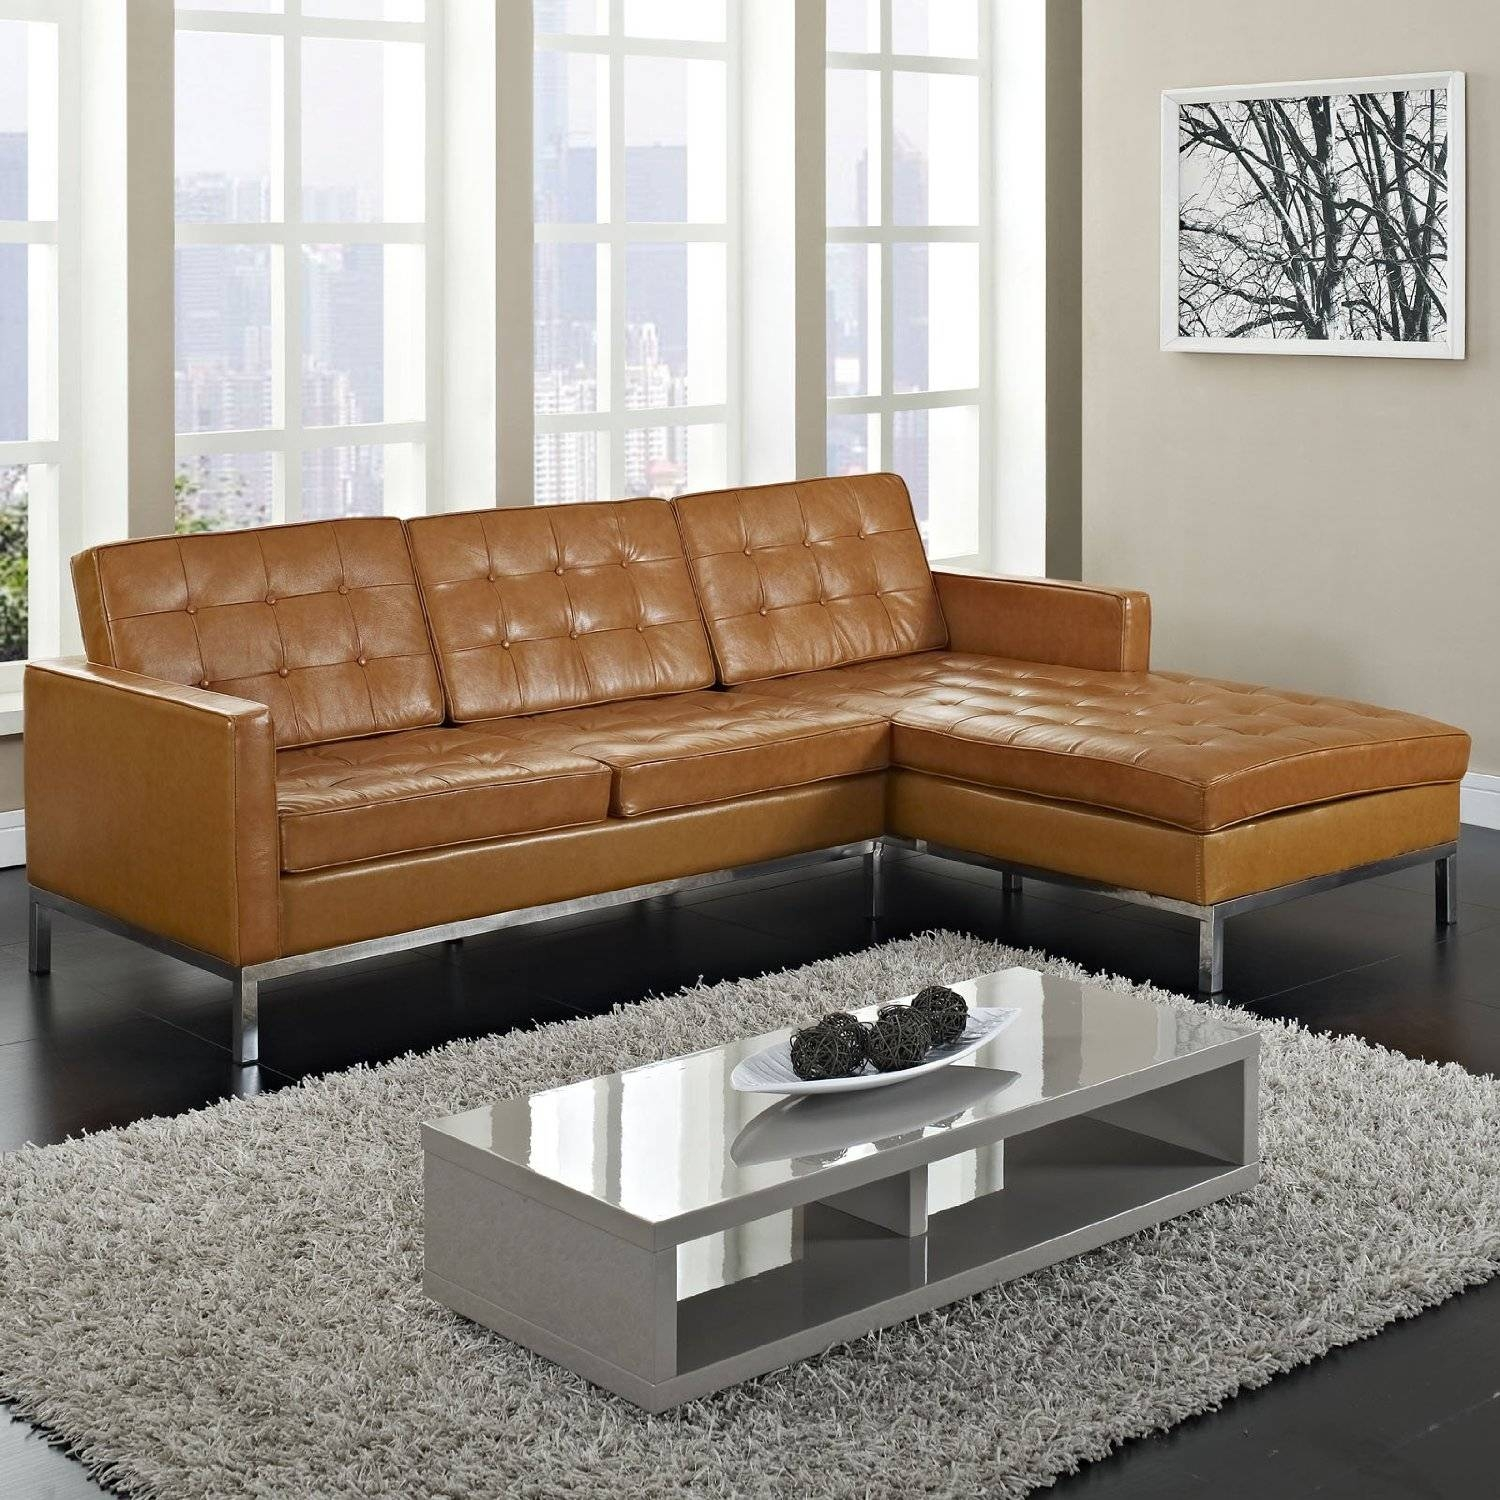 Furniture: Beautiful Sectional Sofas Cheap For Living Room for Cool Cheap Sofas (Image 10 of 30)